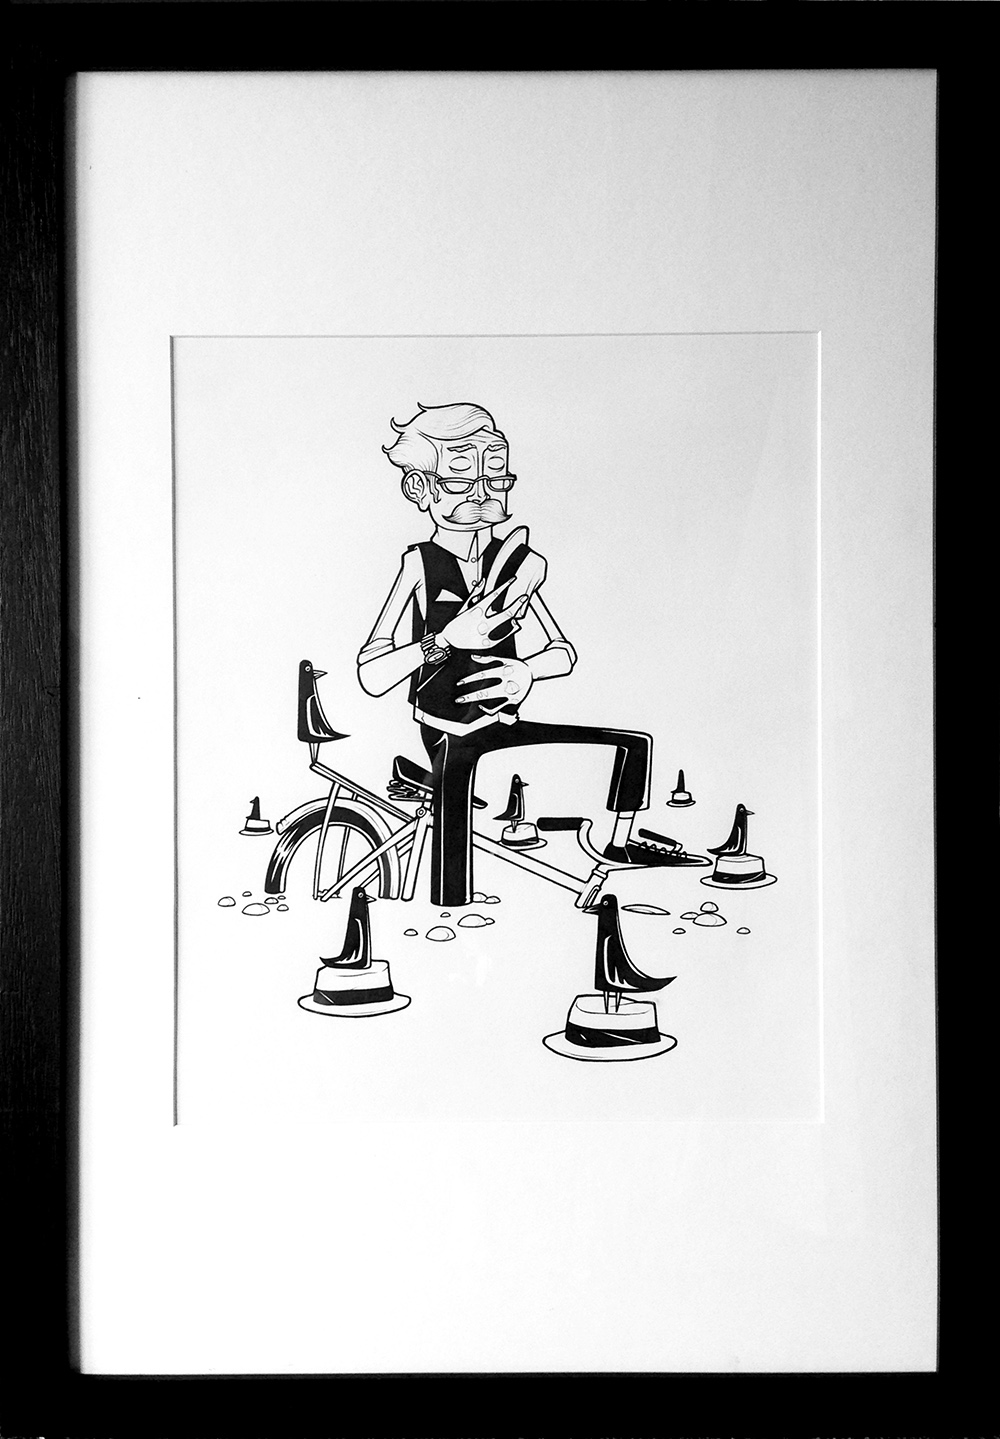 'Start To Finish'. Framed drawing for 'Do One' exhibition in Melbourne, Australia '15